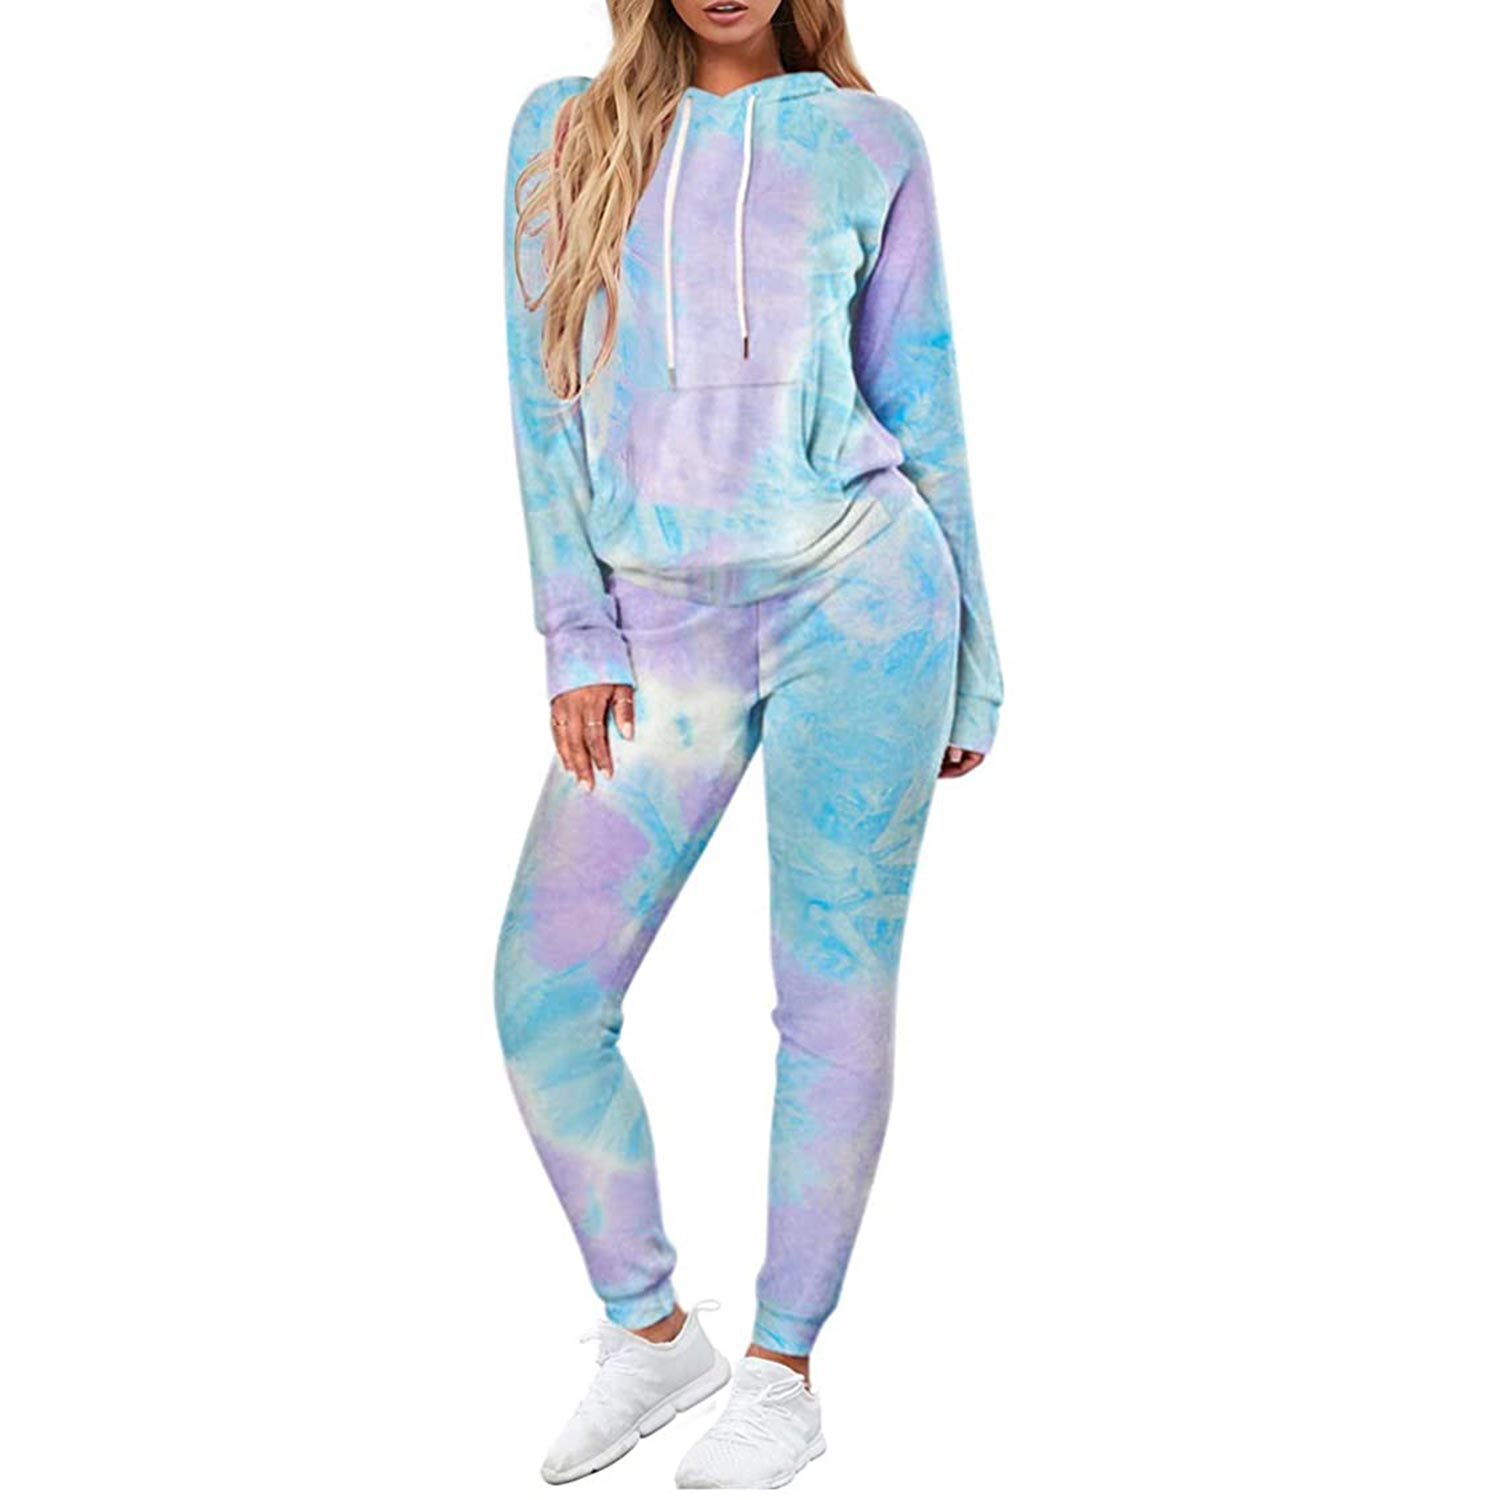 Selowin Women Casual Sweatsuit Pullover Hoodie Sweatpants